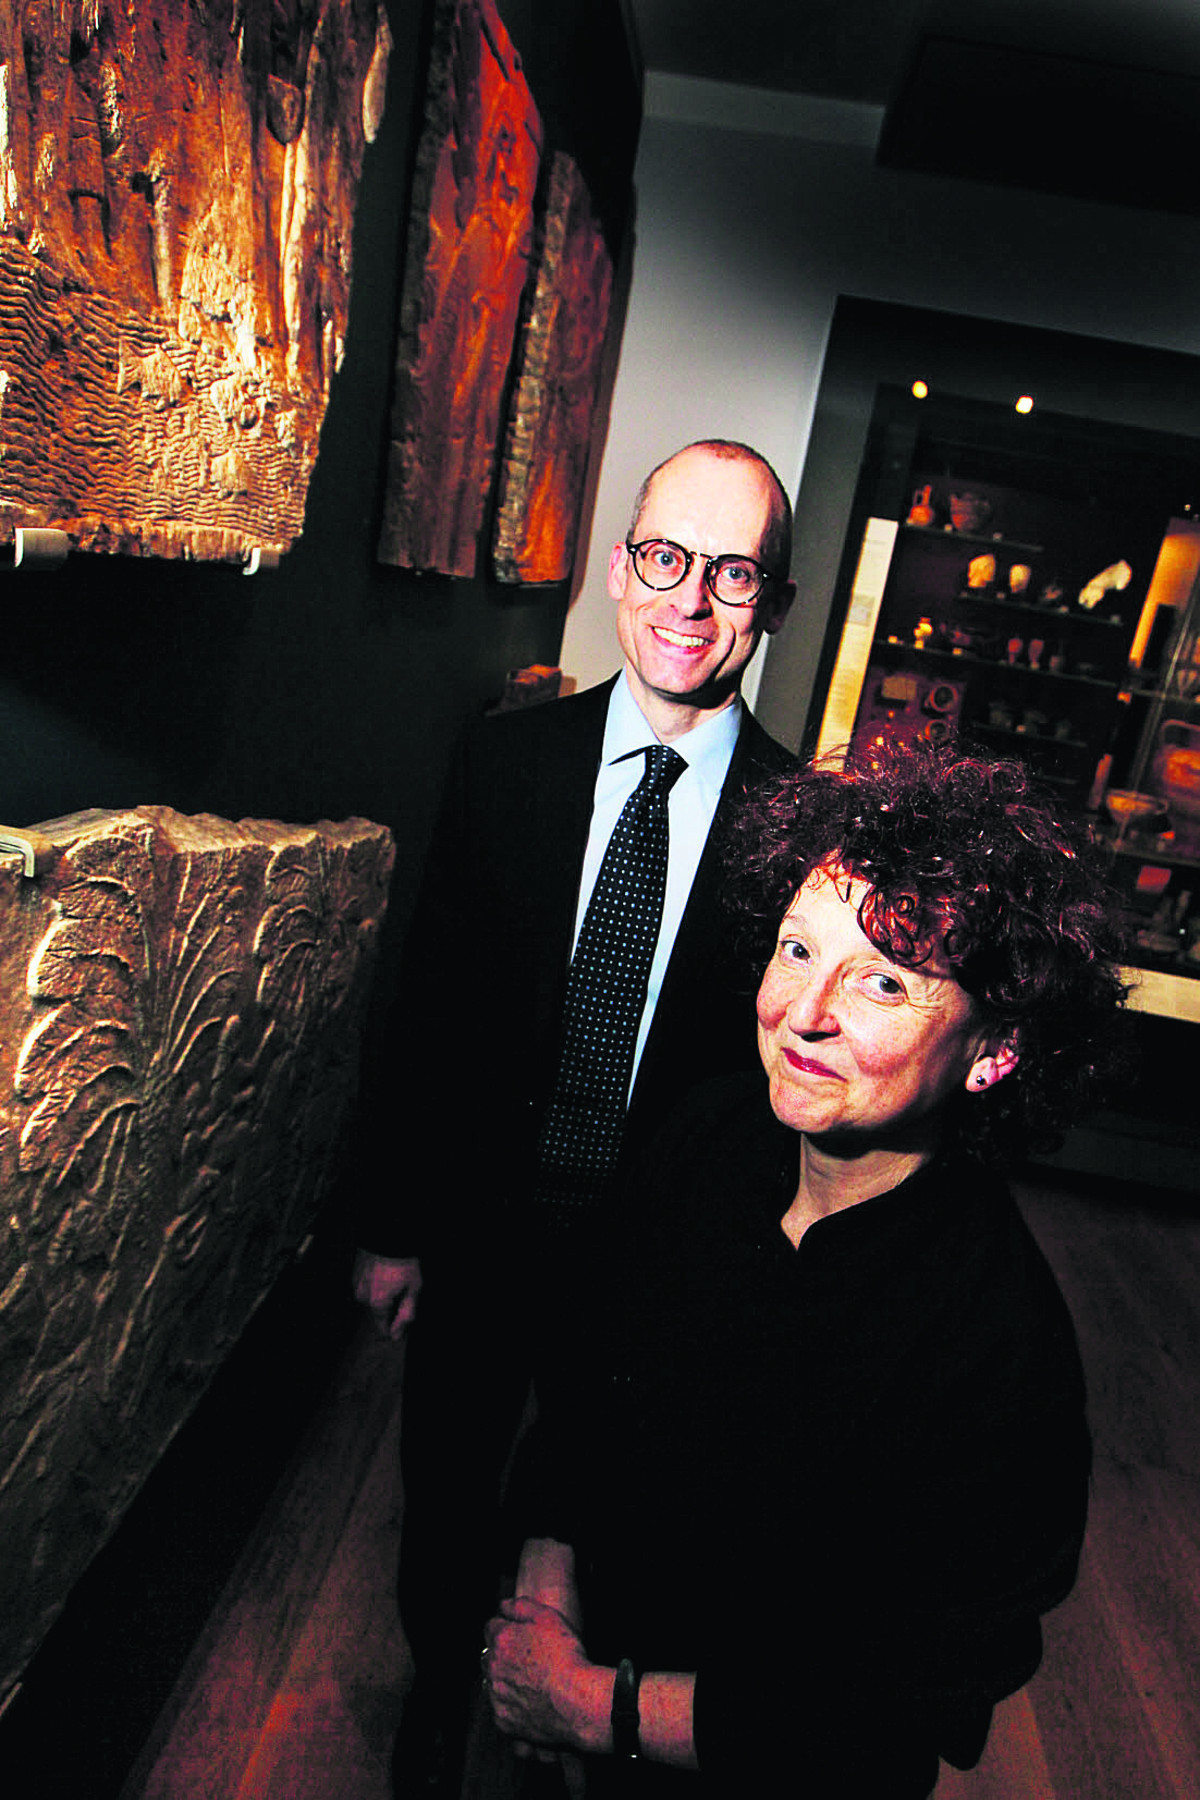 HIGHLIGHT: Dr Paul Collins and Dr Venetia Porter were among the speakers at the Ashmolean's special week of events themed around Syria